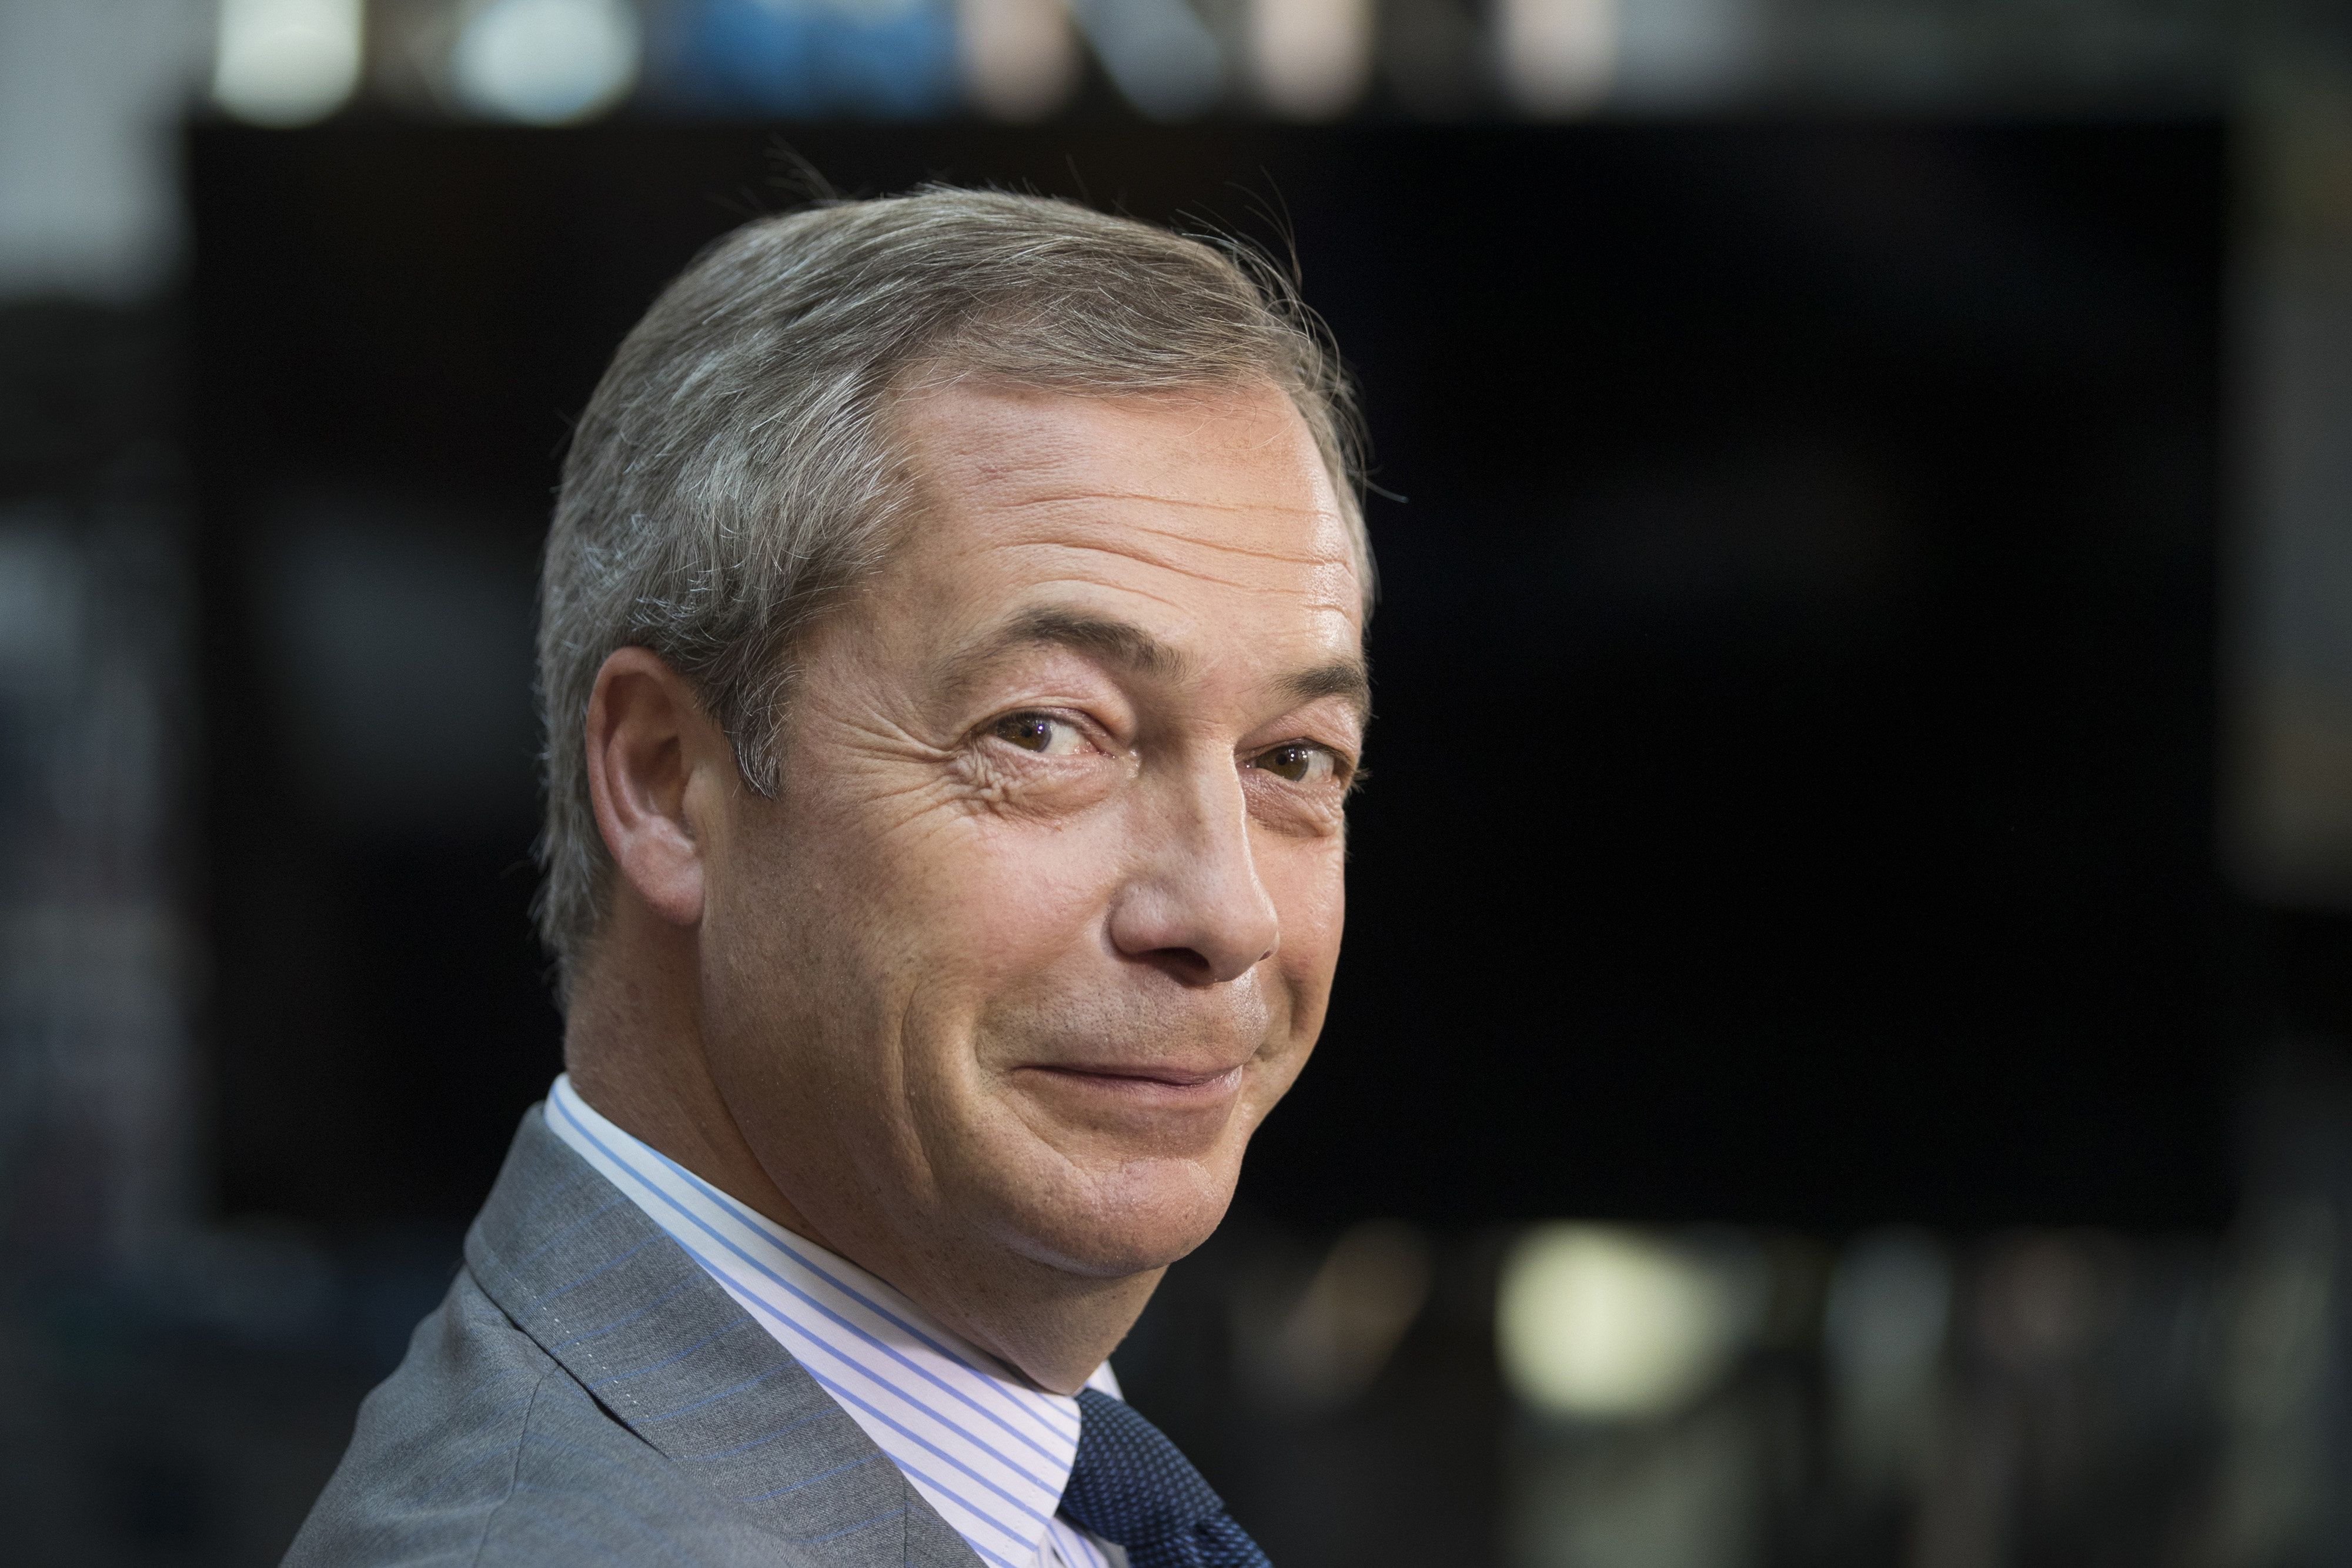 Nigel Farage Issues Sinister 'Shock' Warning To Brits After Donald Trump